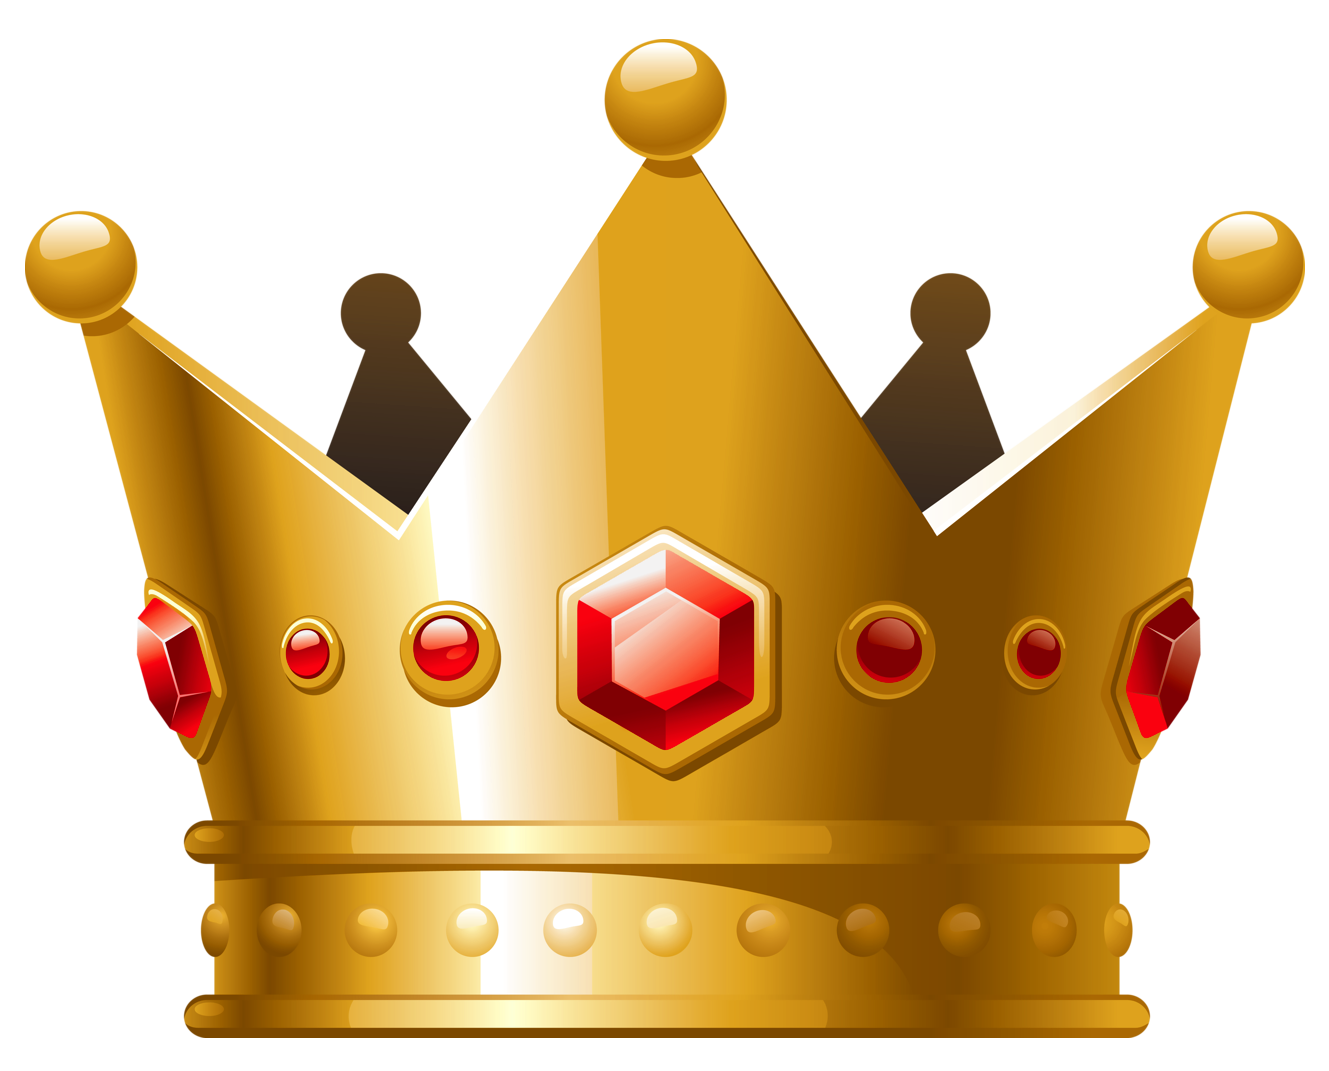 Crown transparent image with. Palace clipart background